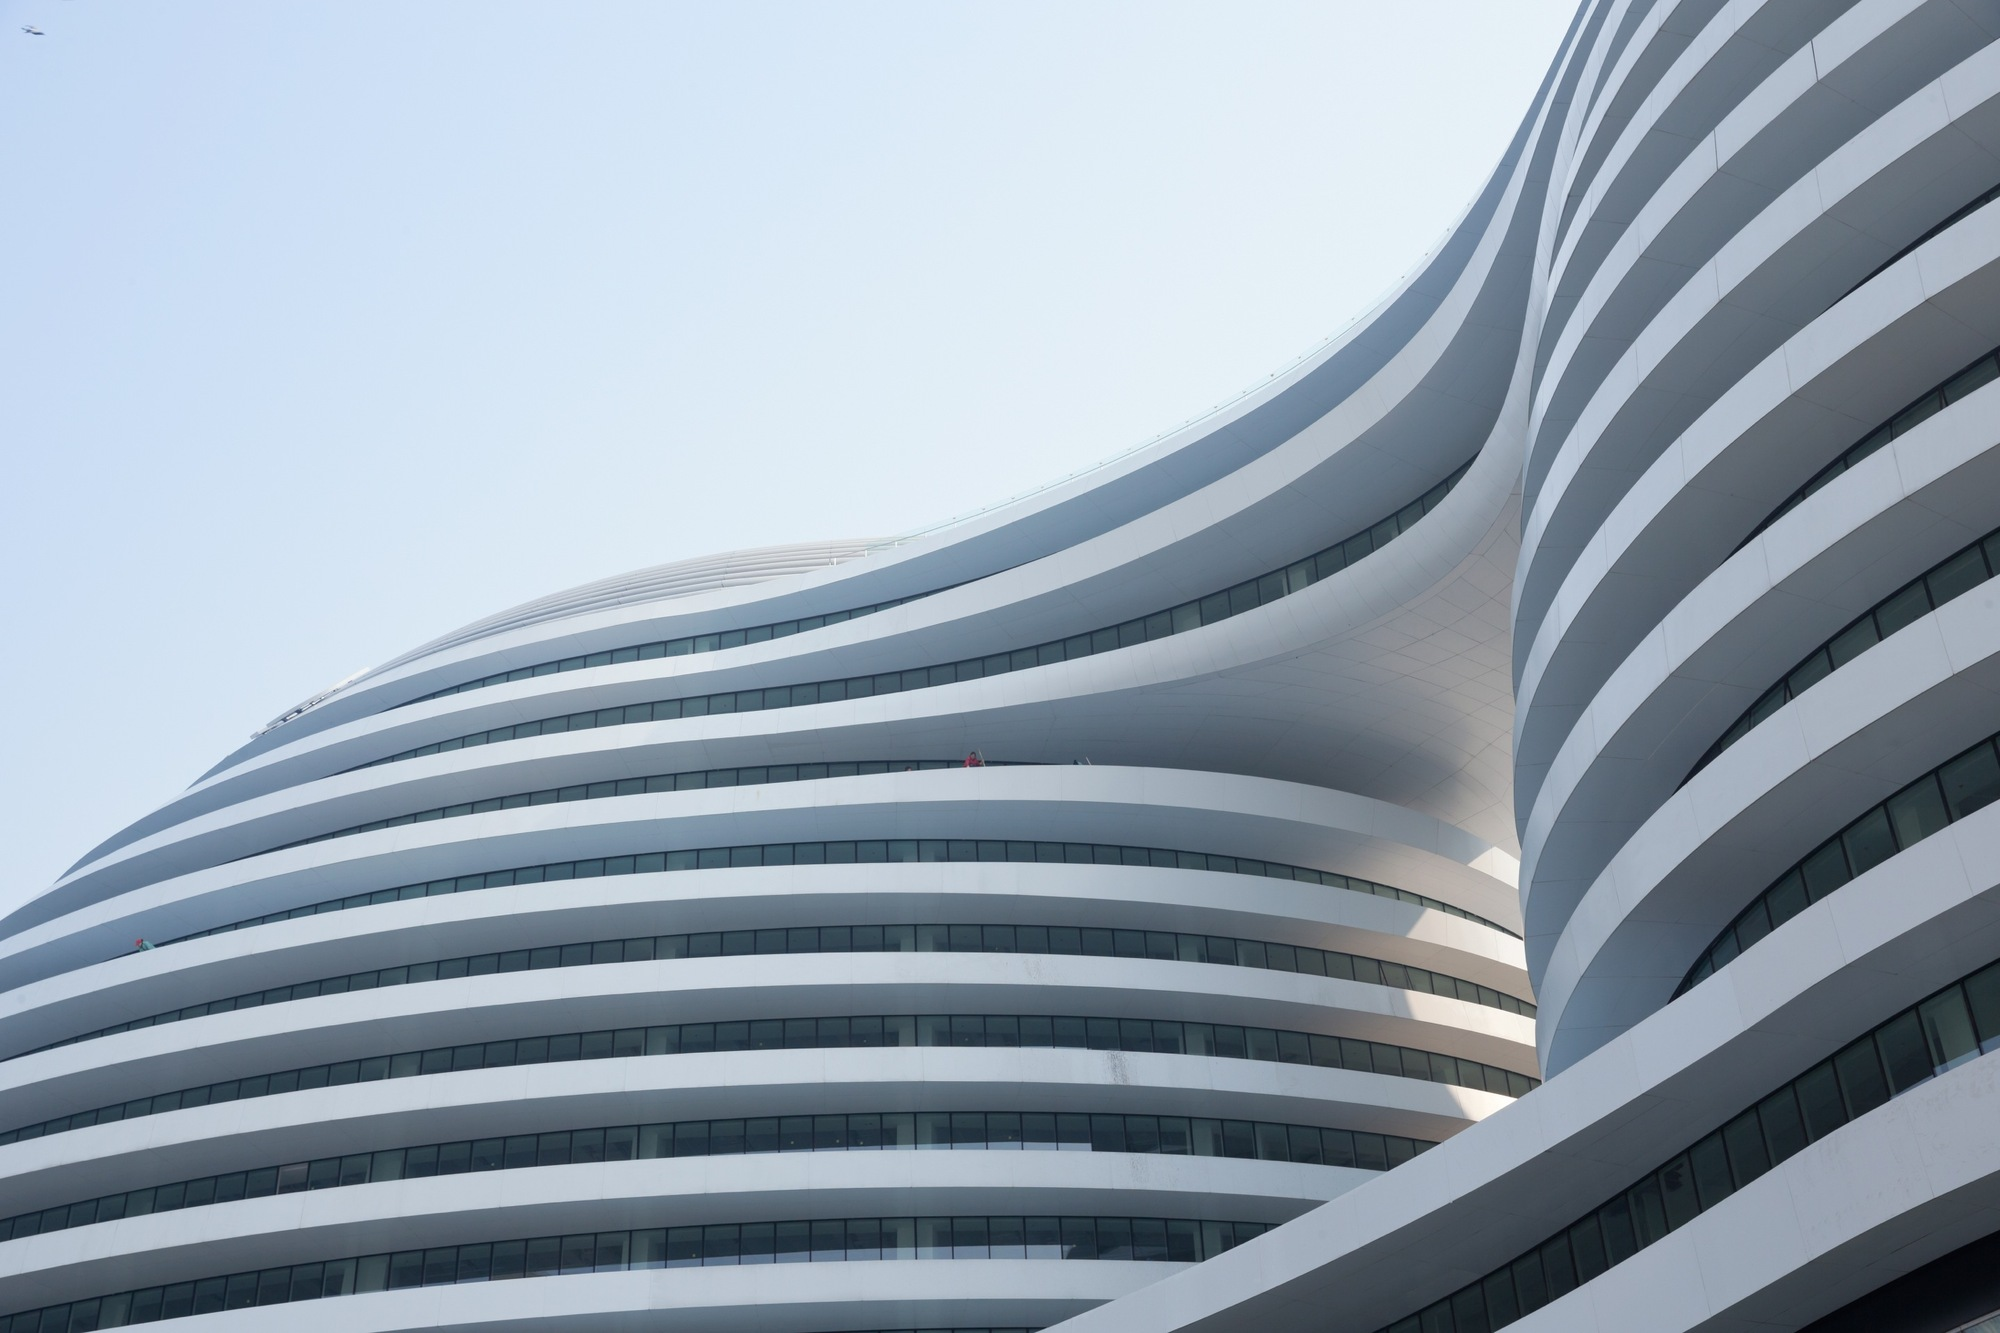 8-galaxy-soho-by-zaha-hadid-architects